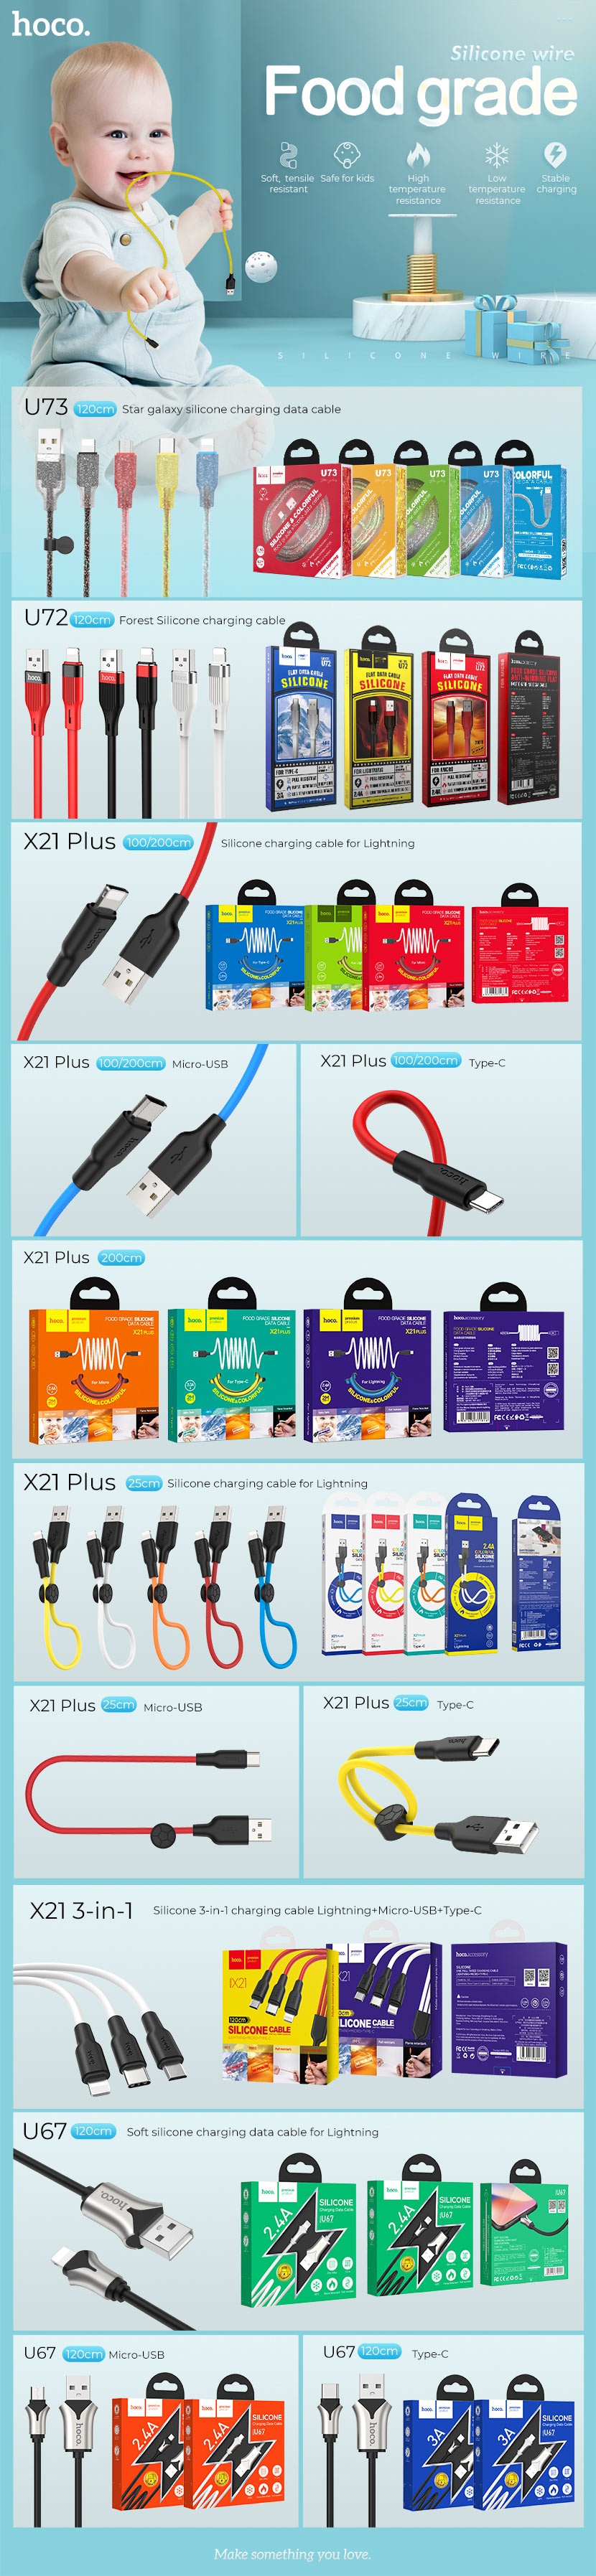 hoco news silicone data cables collection part1 en